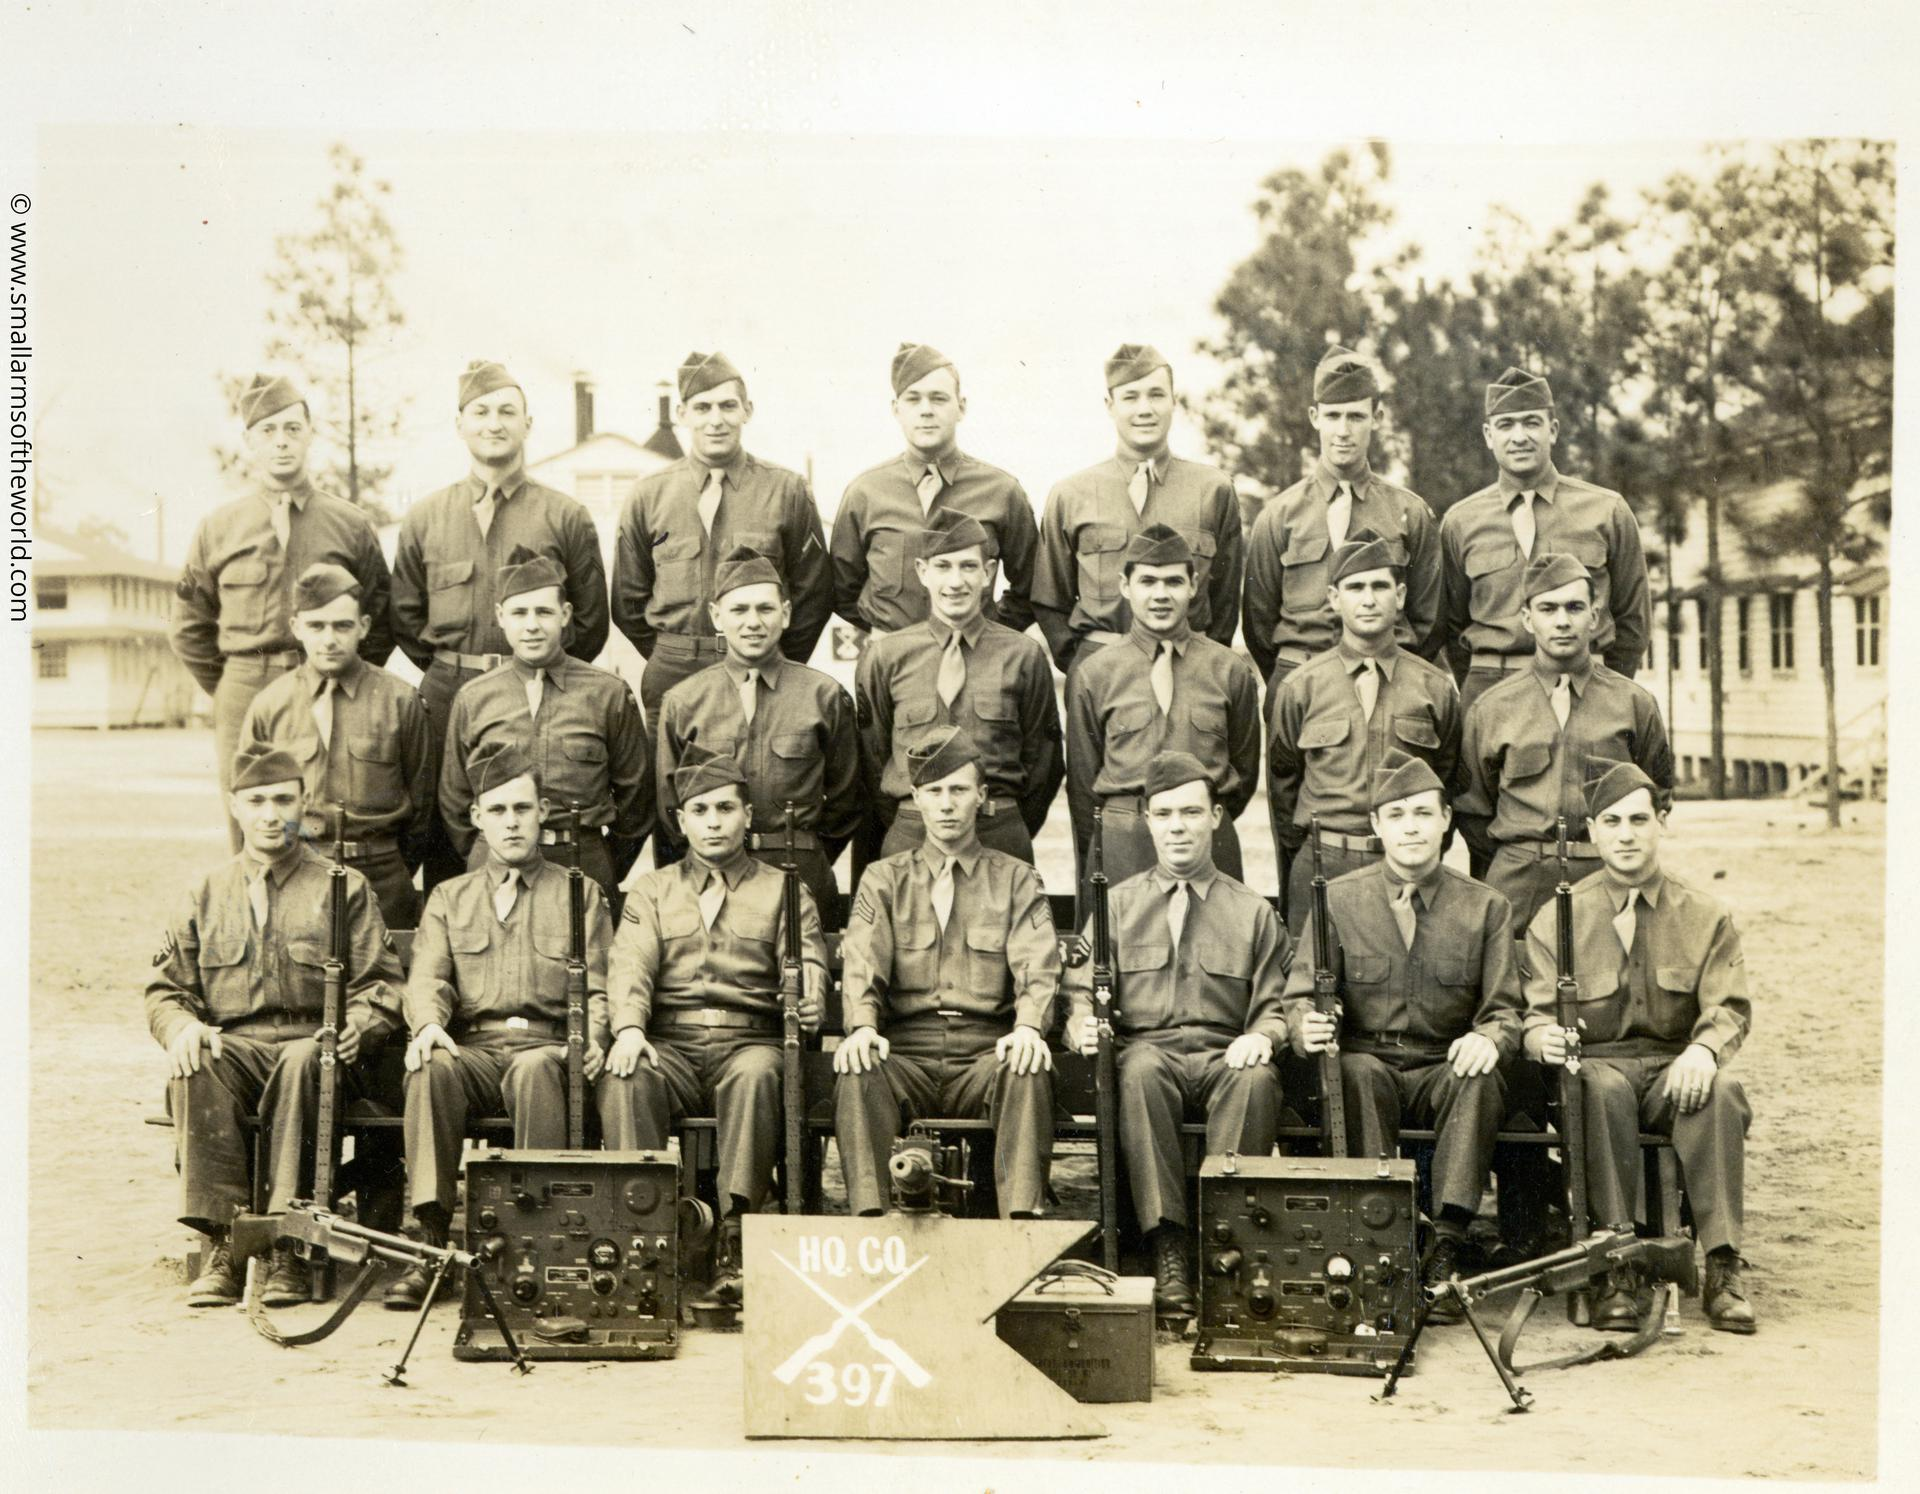 397th Infantry with Browning Automatic Rifles 1918A2. Back row, left to right: Hamond, Korman, Hook, Barlow, Dobbins, Burbank, Scarpone. Middle row, left to right: Bennett, Decker, Weingus, Pillsbury, Syc, Jones, Leckage Front row, left to right: Mufson, Corary, Booten, Watson, Ross, Thompson, Mincone